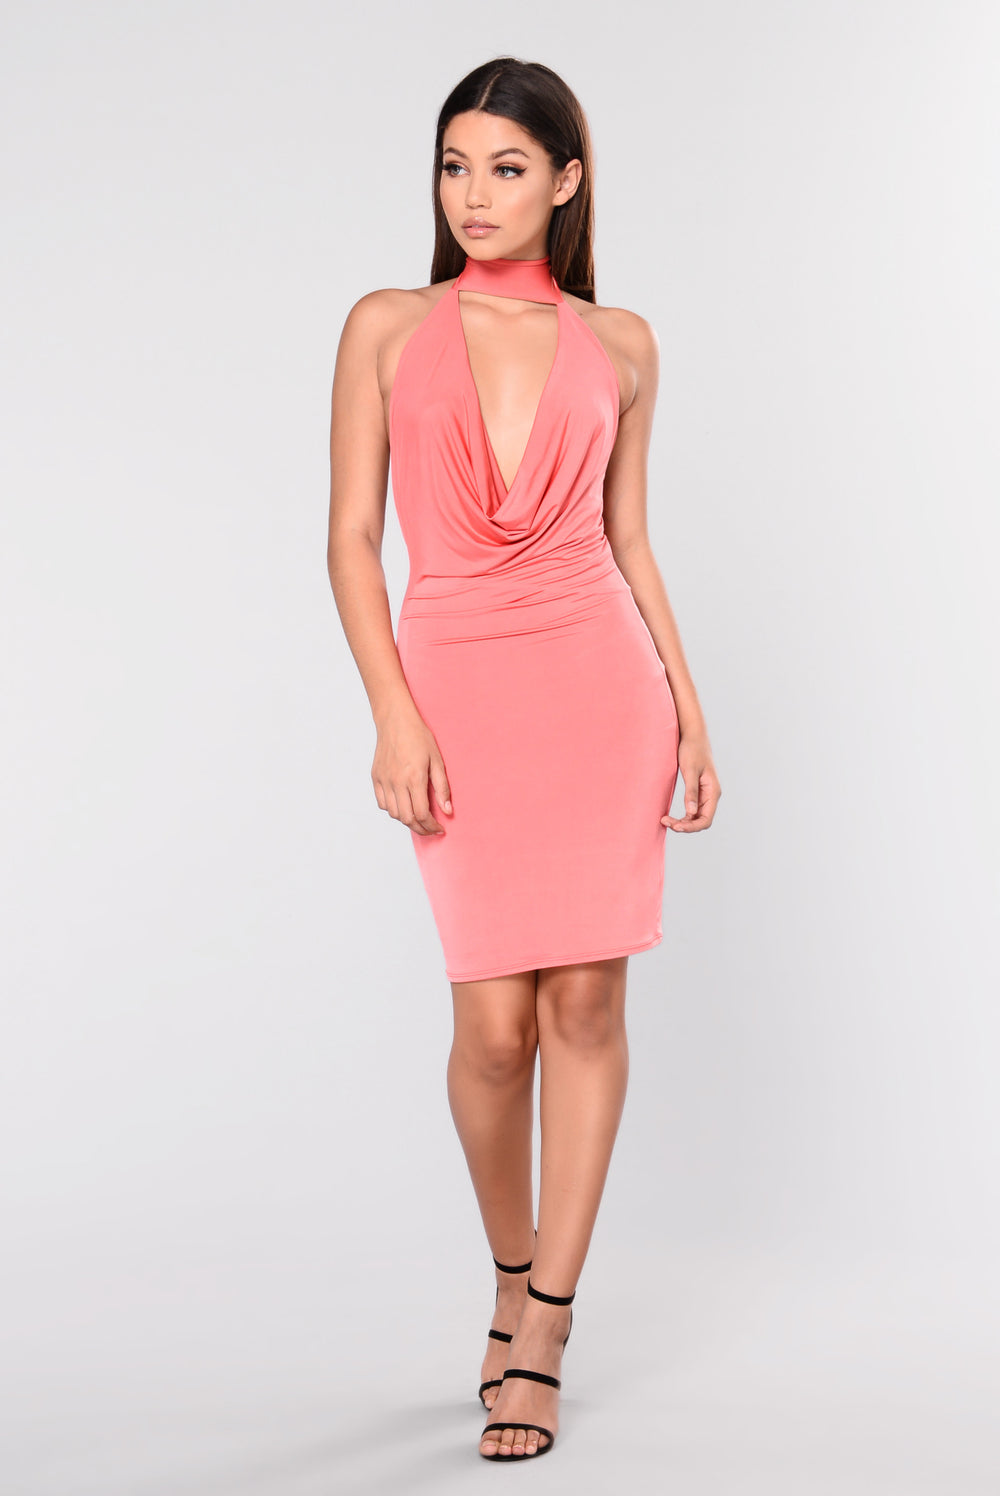 Twiggy Chocker Dress - Dark Coral